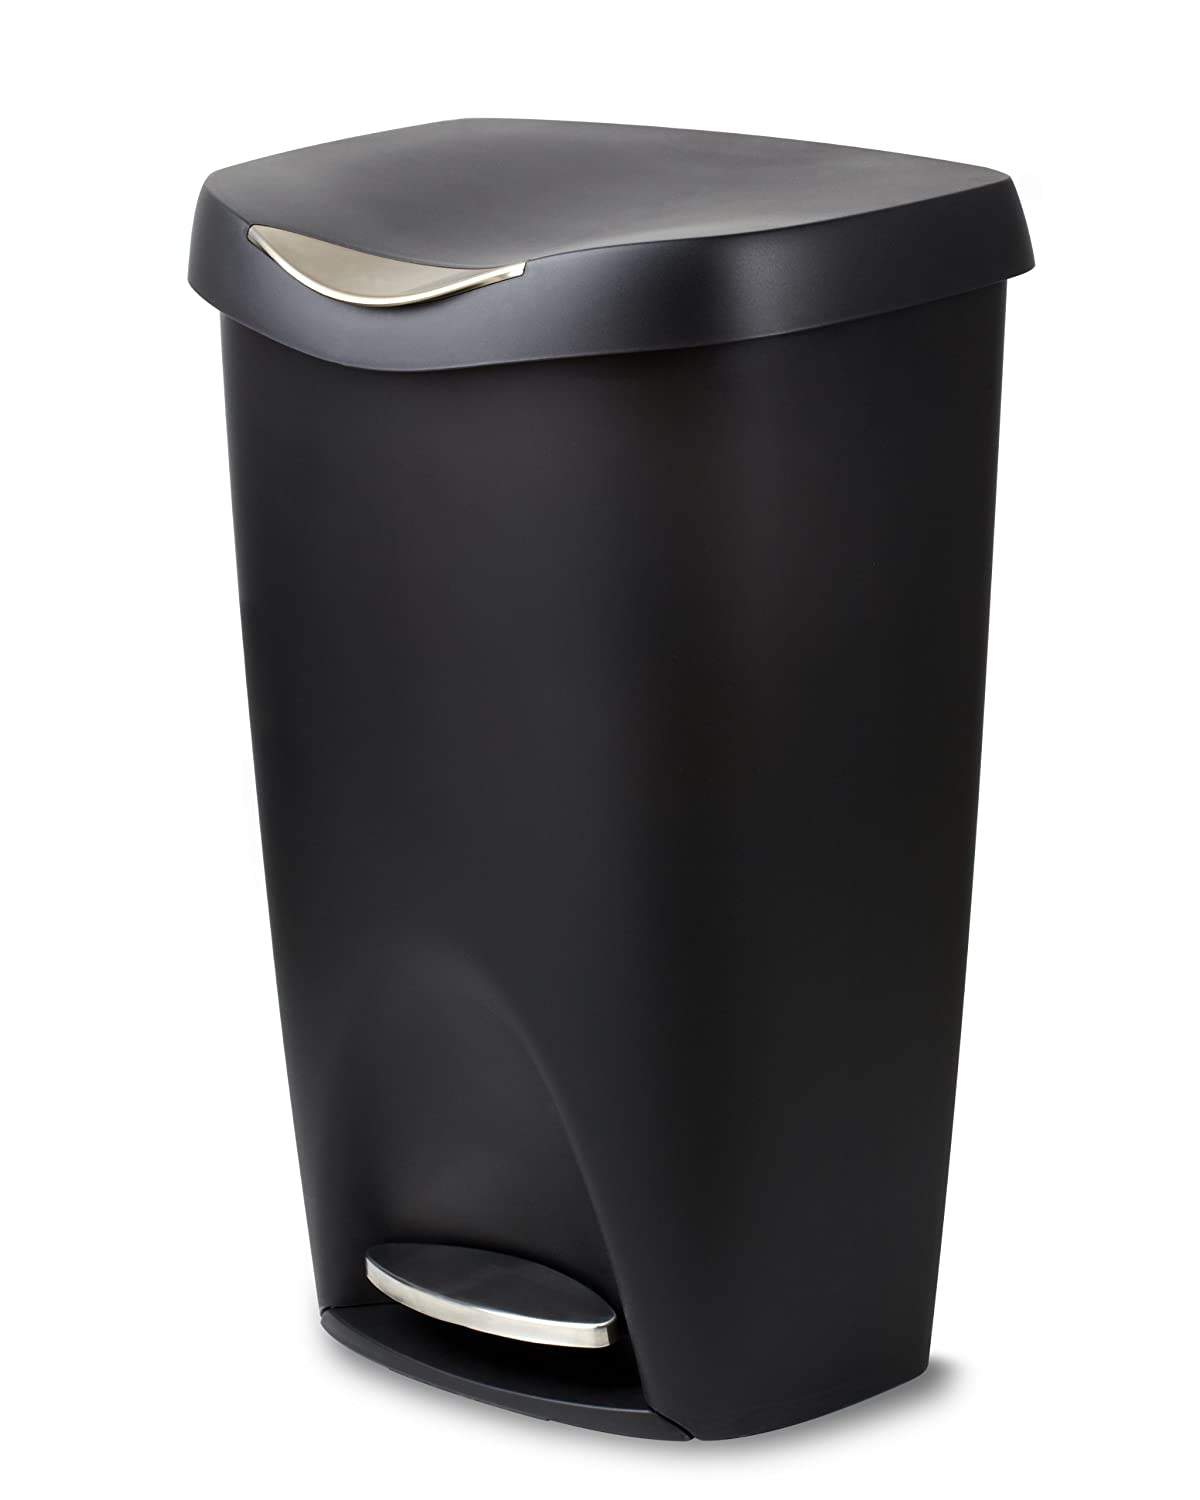 Delicieux Amazon.com: Umbra Brim Large Kitchen Trash Can With Stainless Steel Foot  Pedal U2013 Stylish And Durable 13 Gallon Step Garbage Can With Lid, (Black):  Home U0026 ...